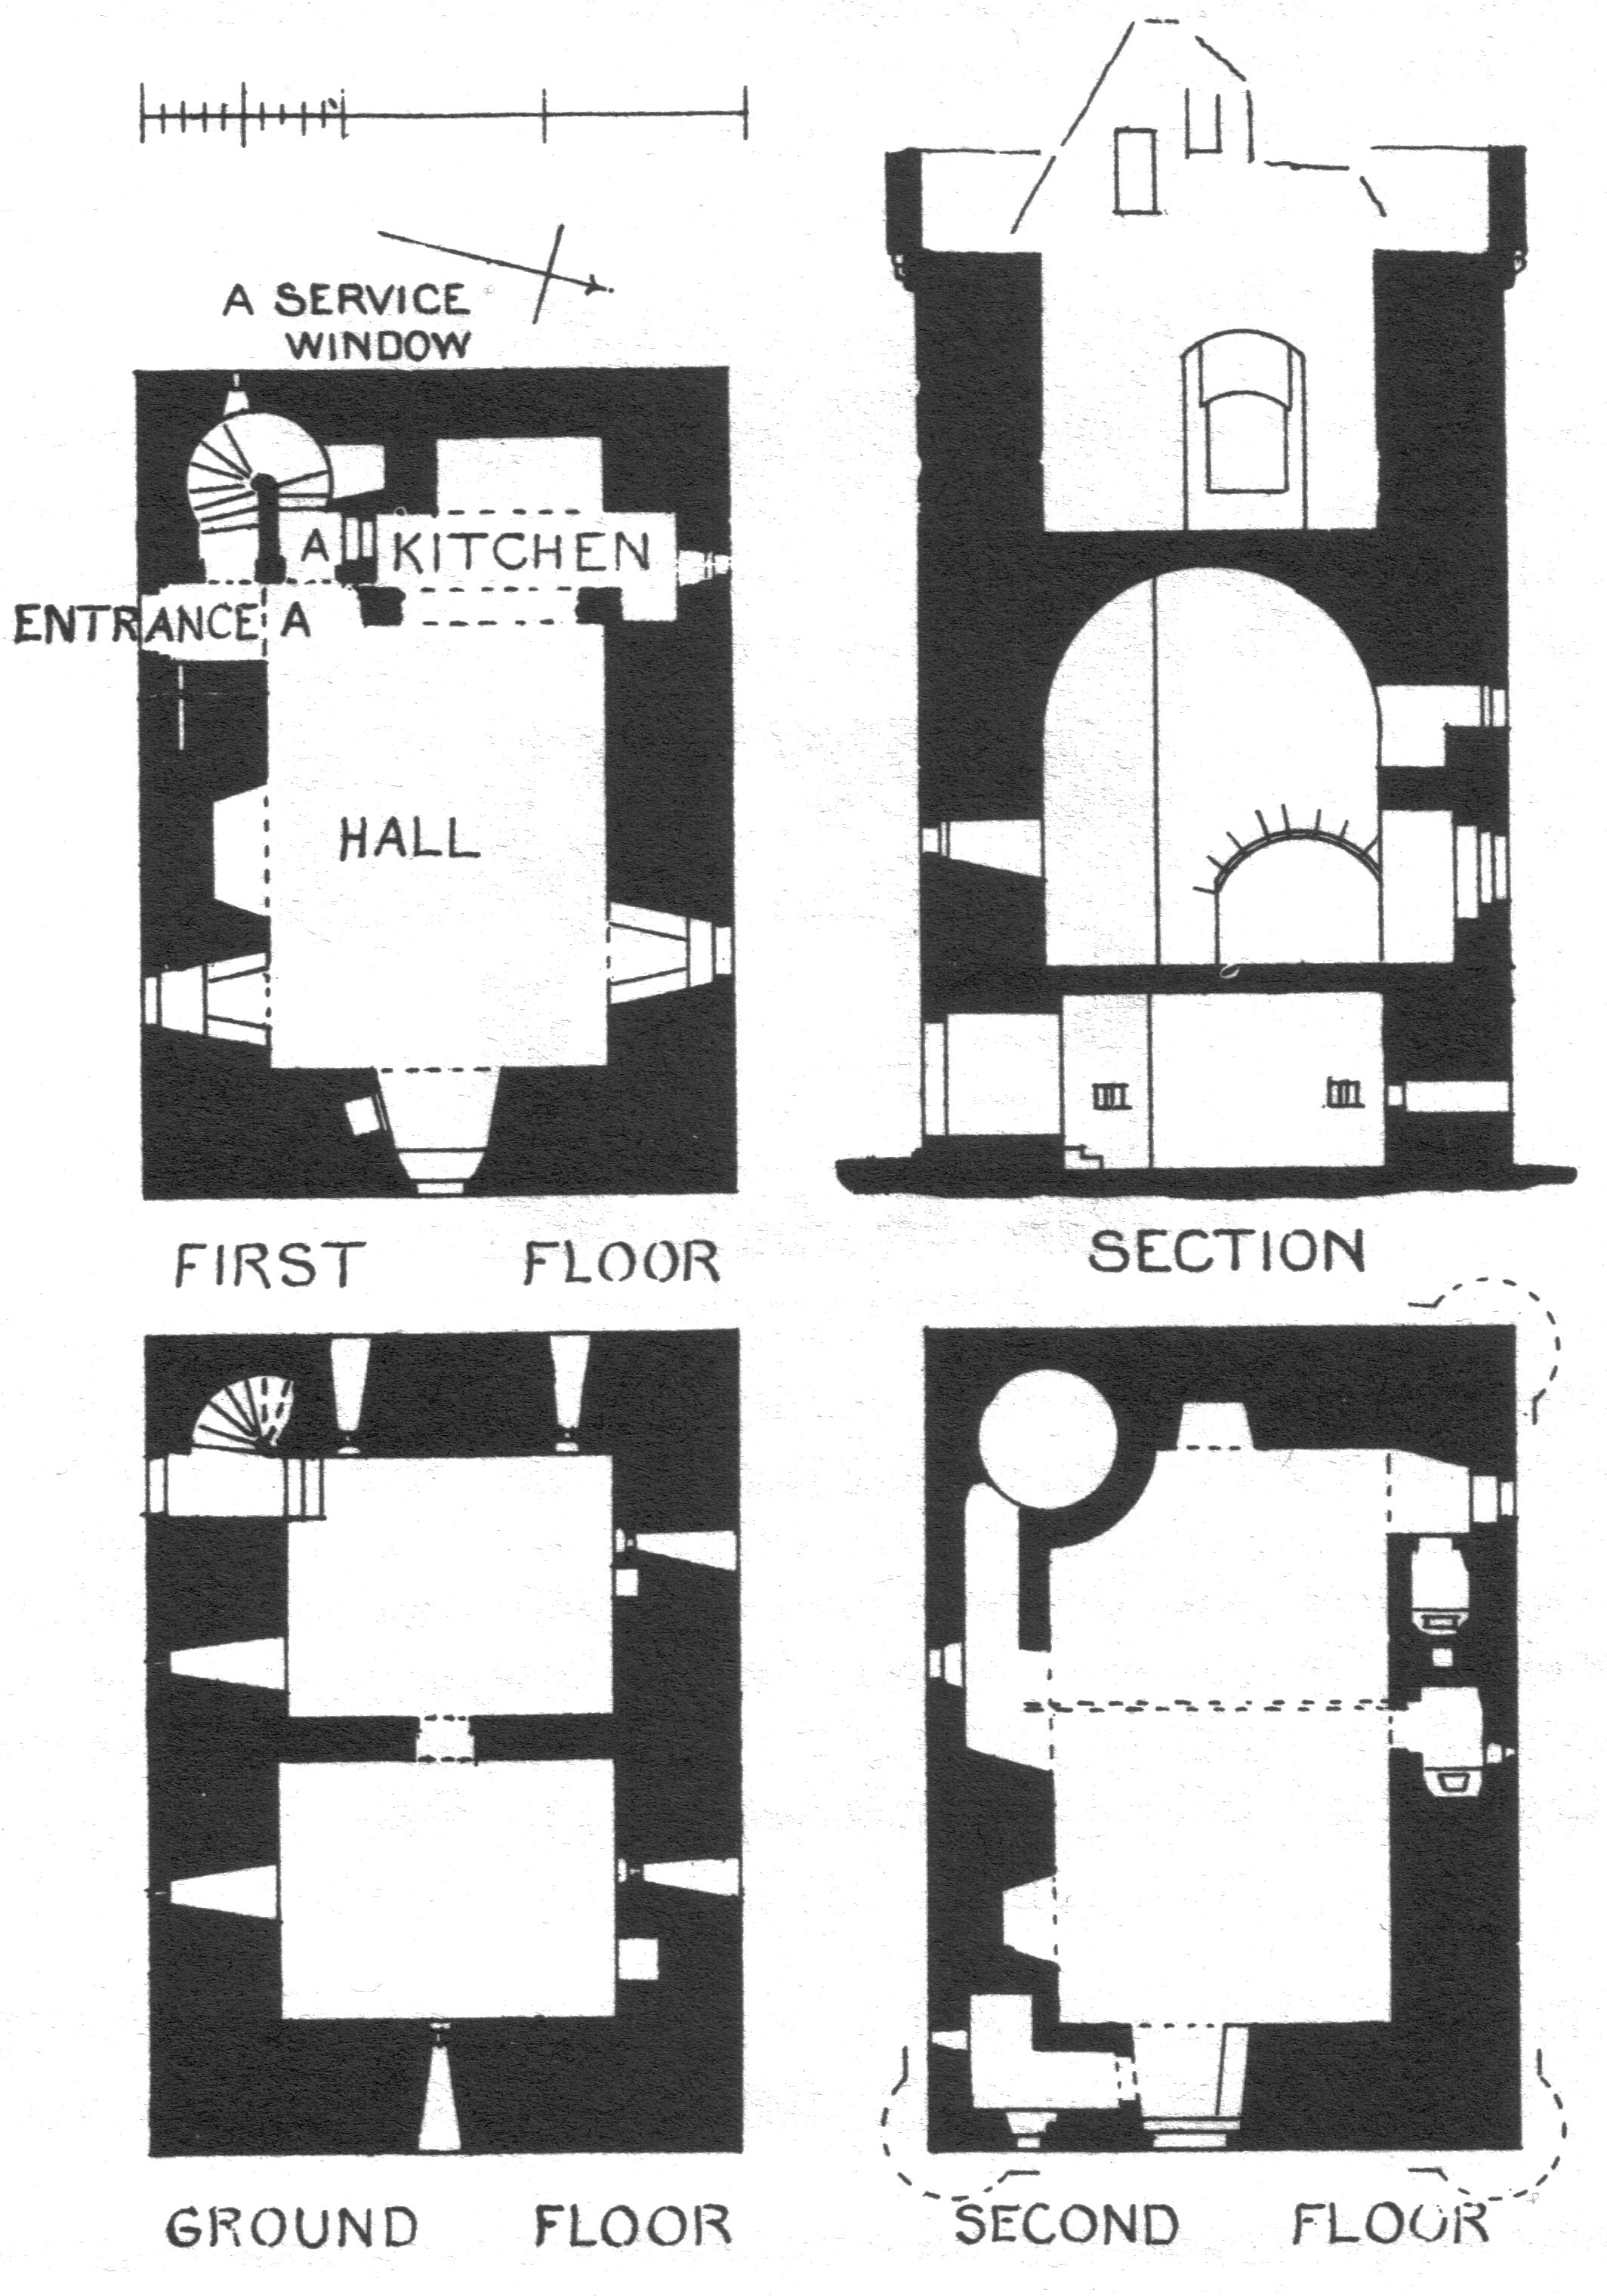 File:Little Cumbrae Castle floorplan.jpg - Wikimedia Commons